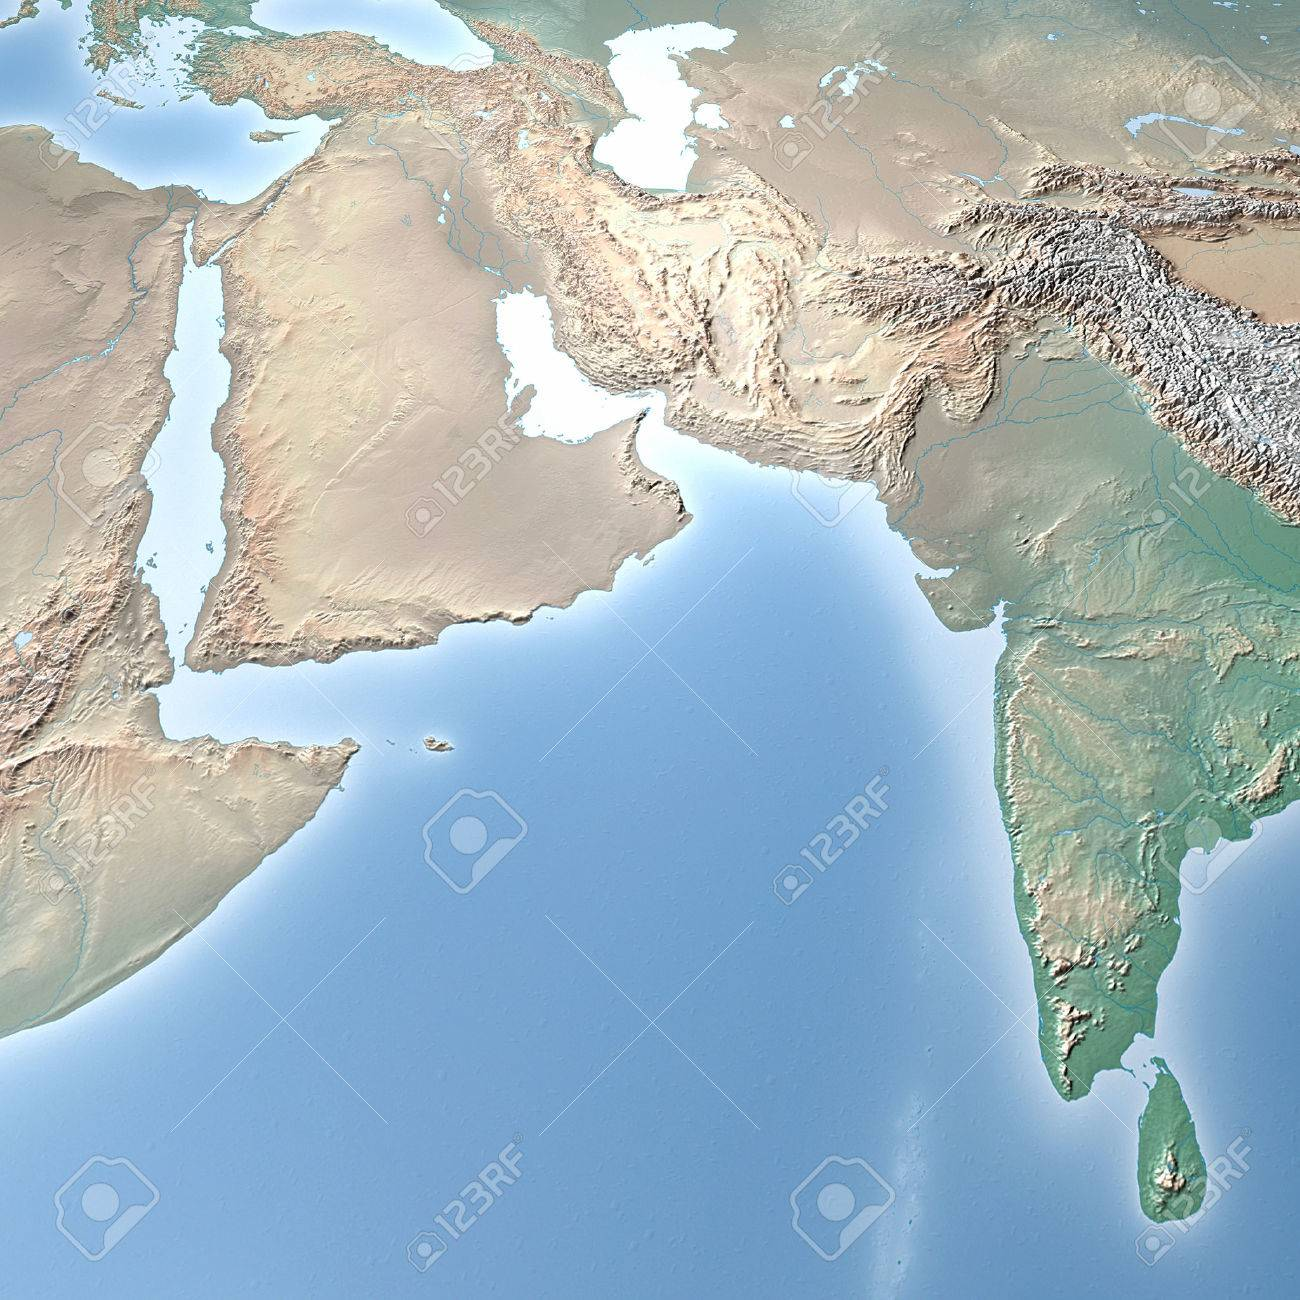 Stock Photo   World Map, Physical Map, Middle East, North Africa And Europe